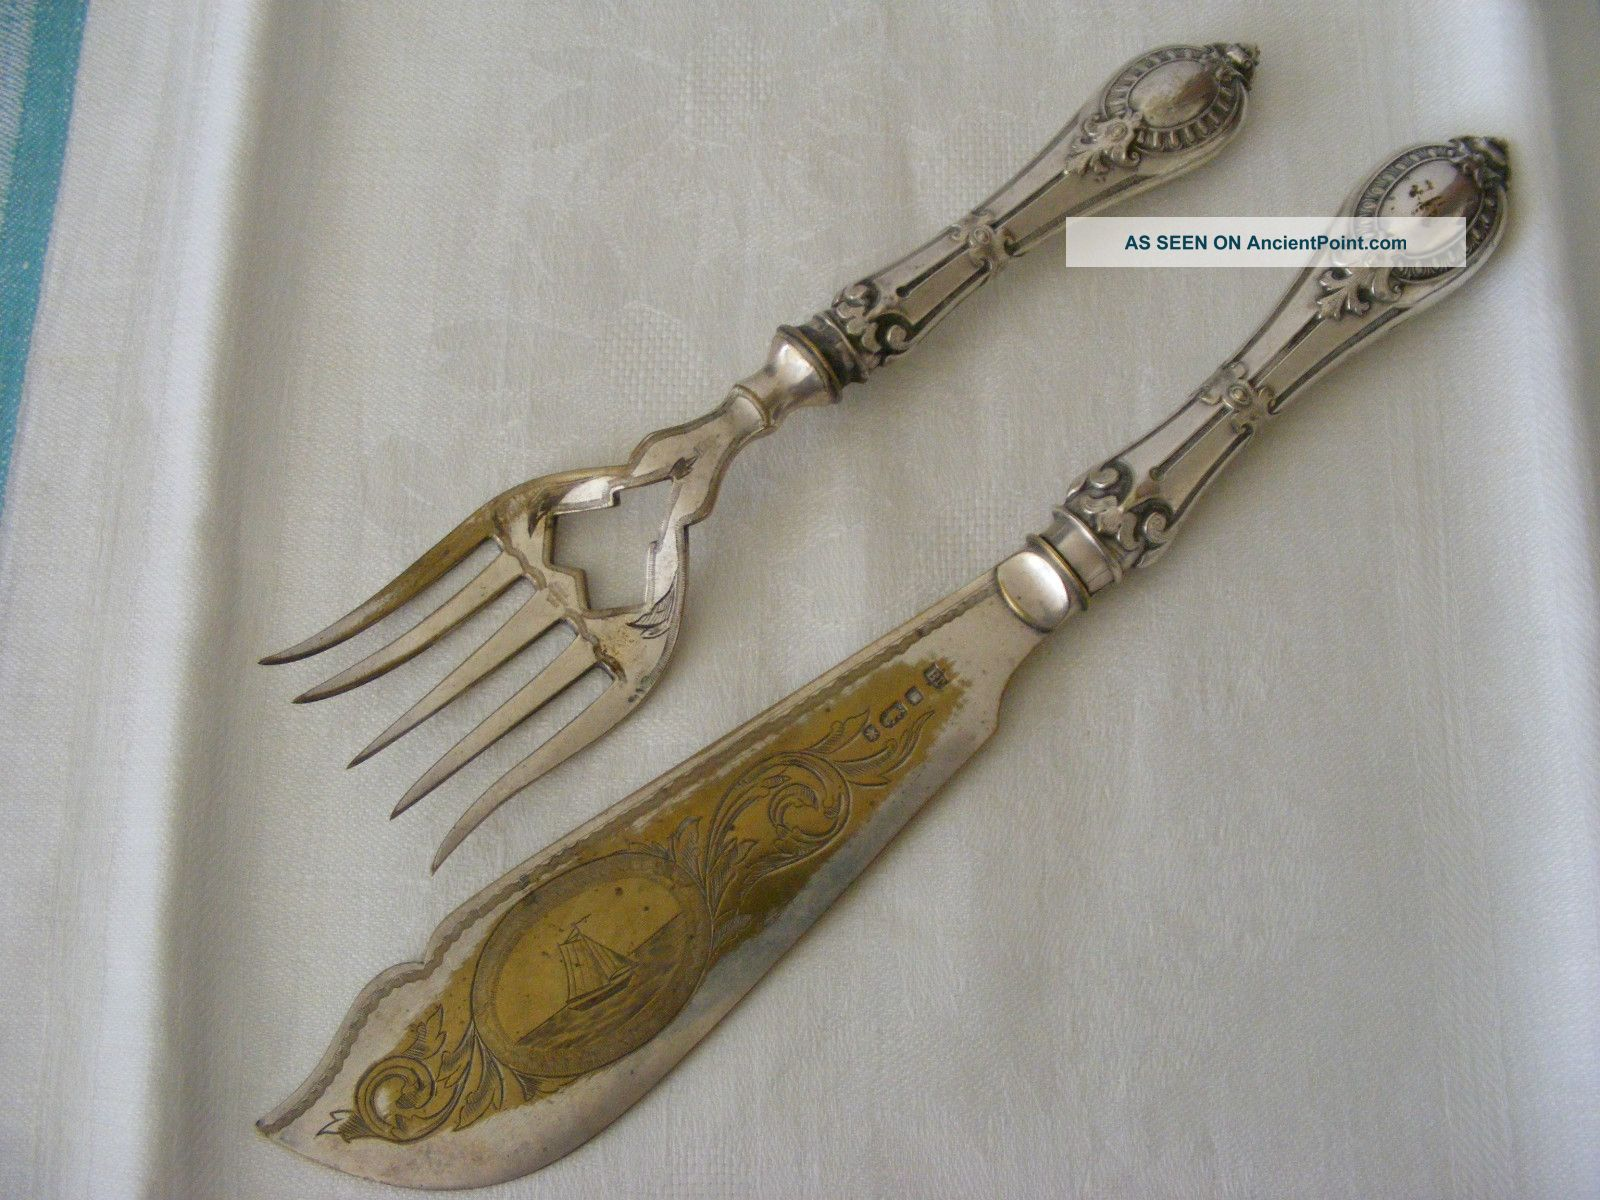 Rare 19thc Silver Fish Carving Serving Set Knife Fork Silber French English Sty Unknown photo